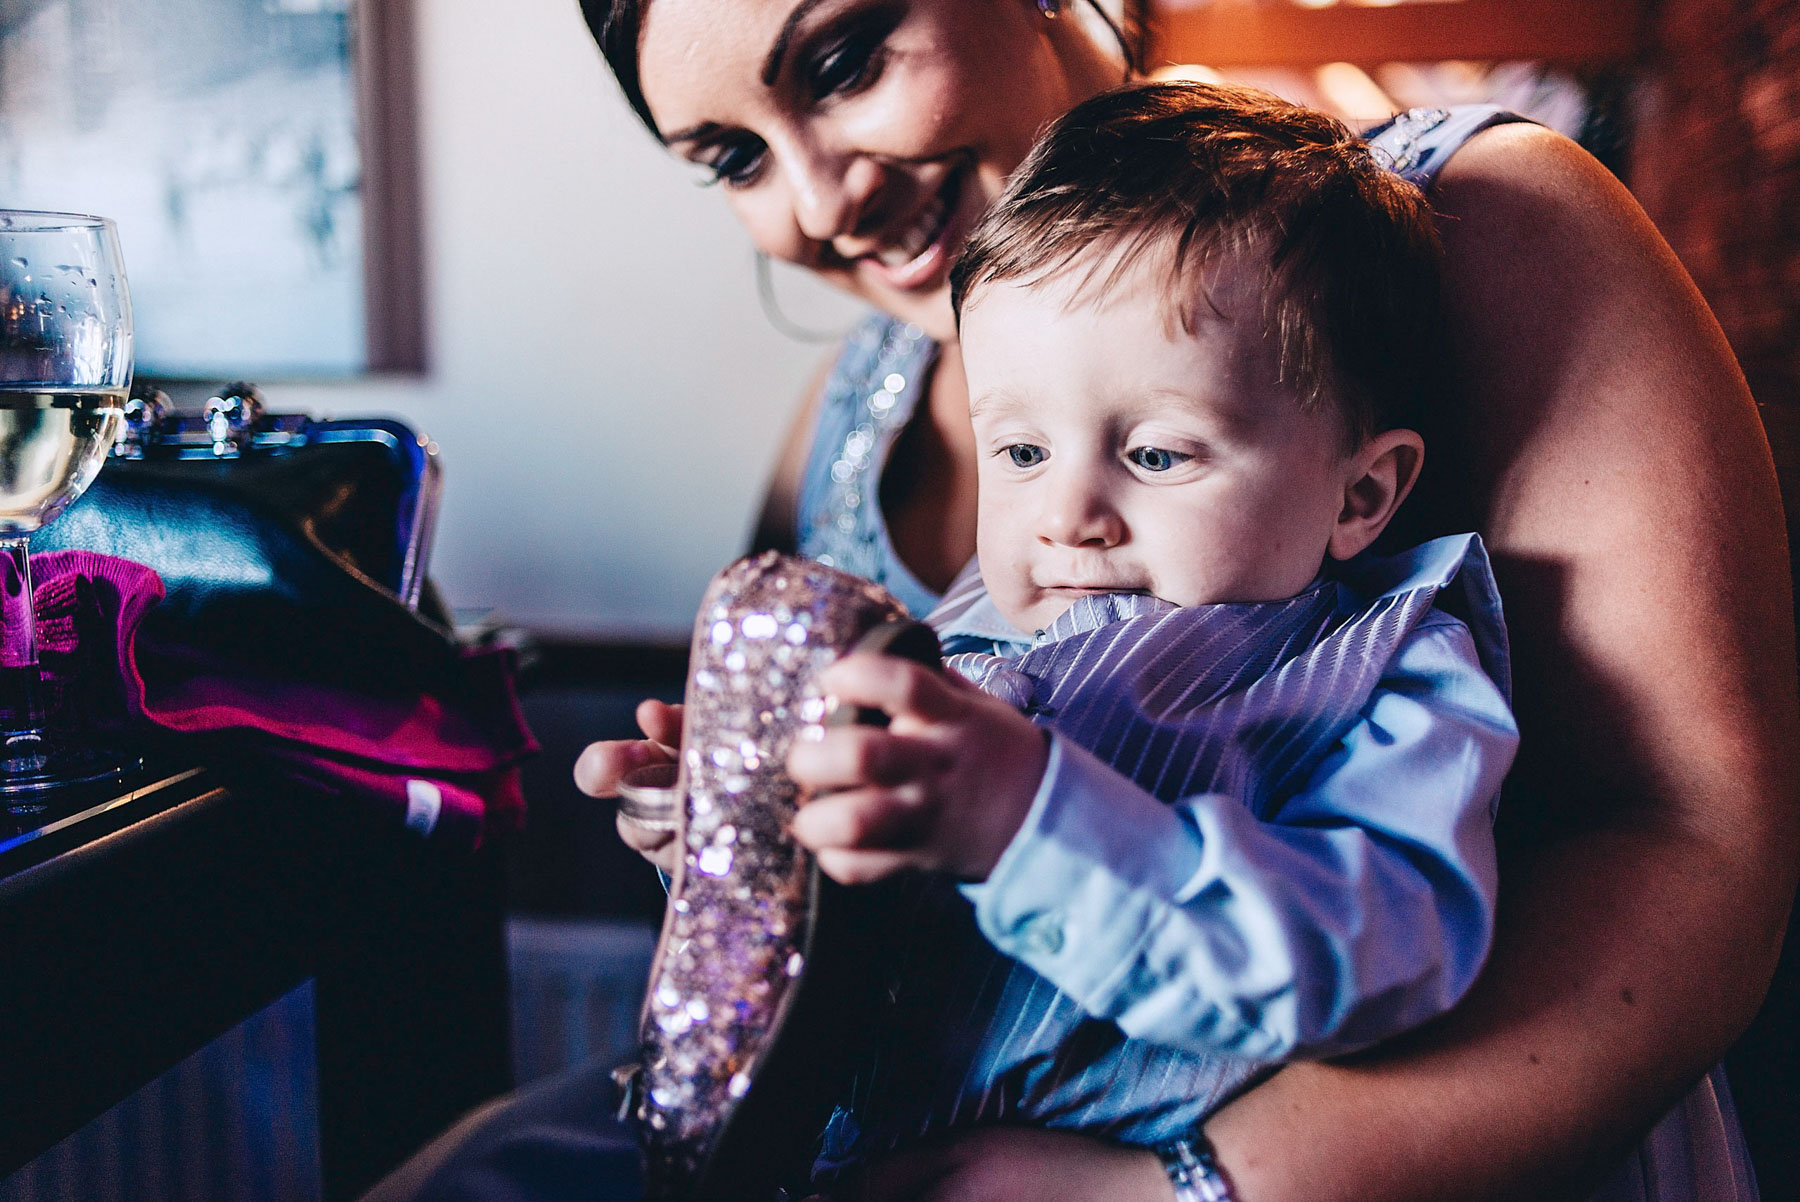 Brides son plays with sparking shoe